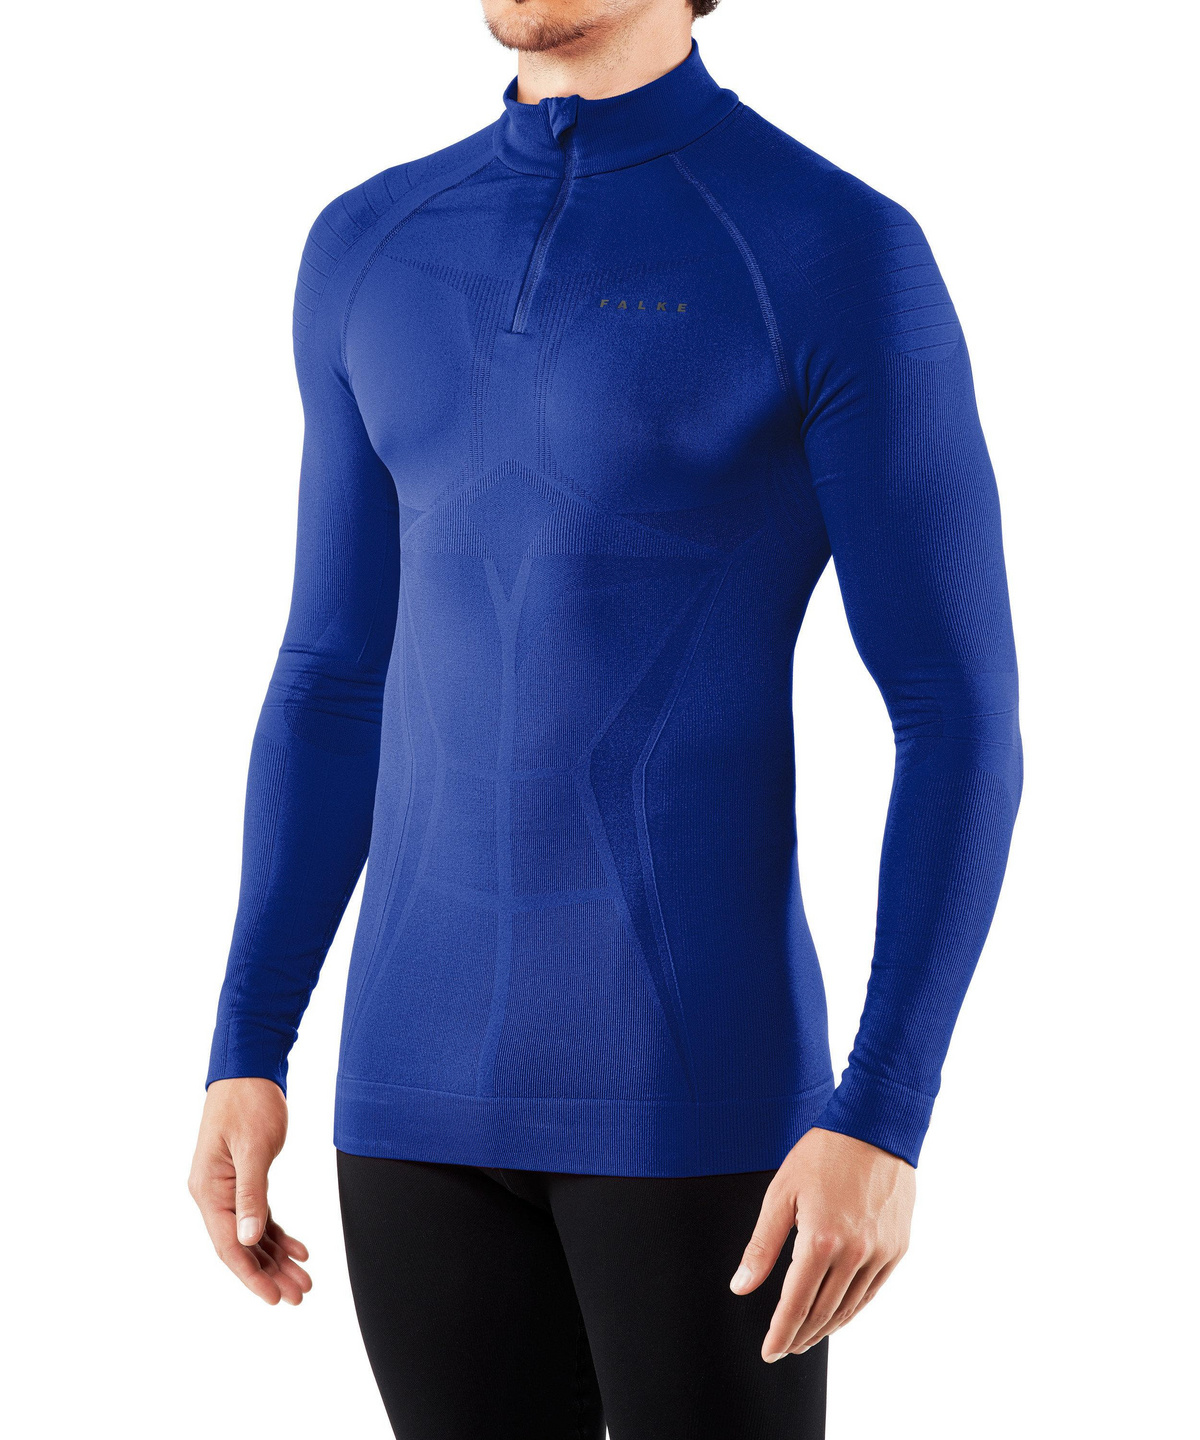 For hiking Performance Fabric Multiple Colours breathable FALKE Mens Maximum Warm Trend Long Sleeve Base Layer Top trekking snowboarding: warm quick dry Sizes S-XXL ski 1 Piece